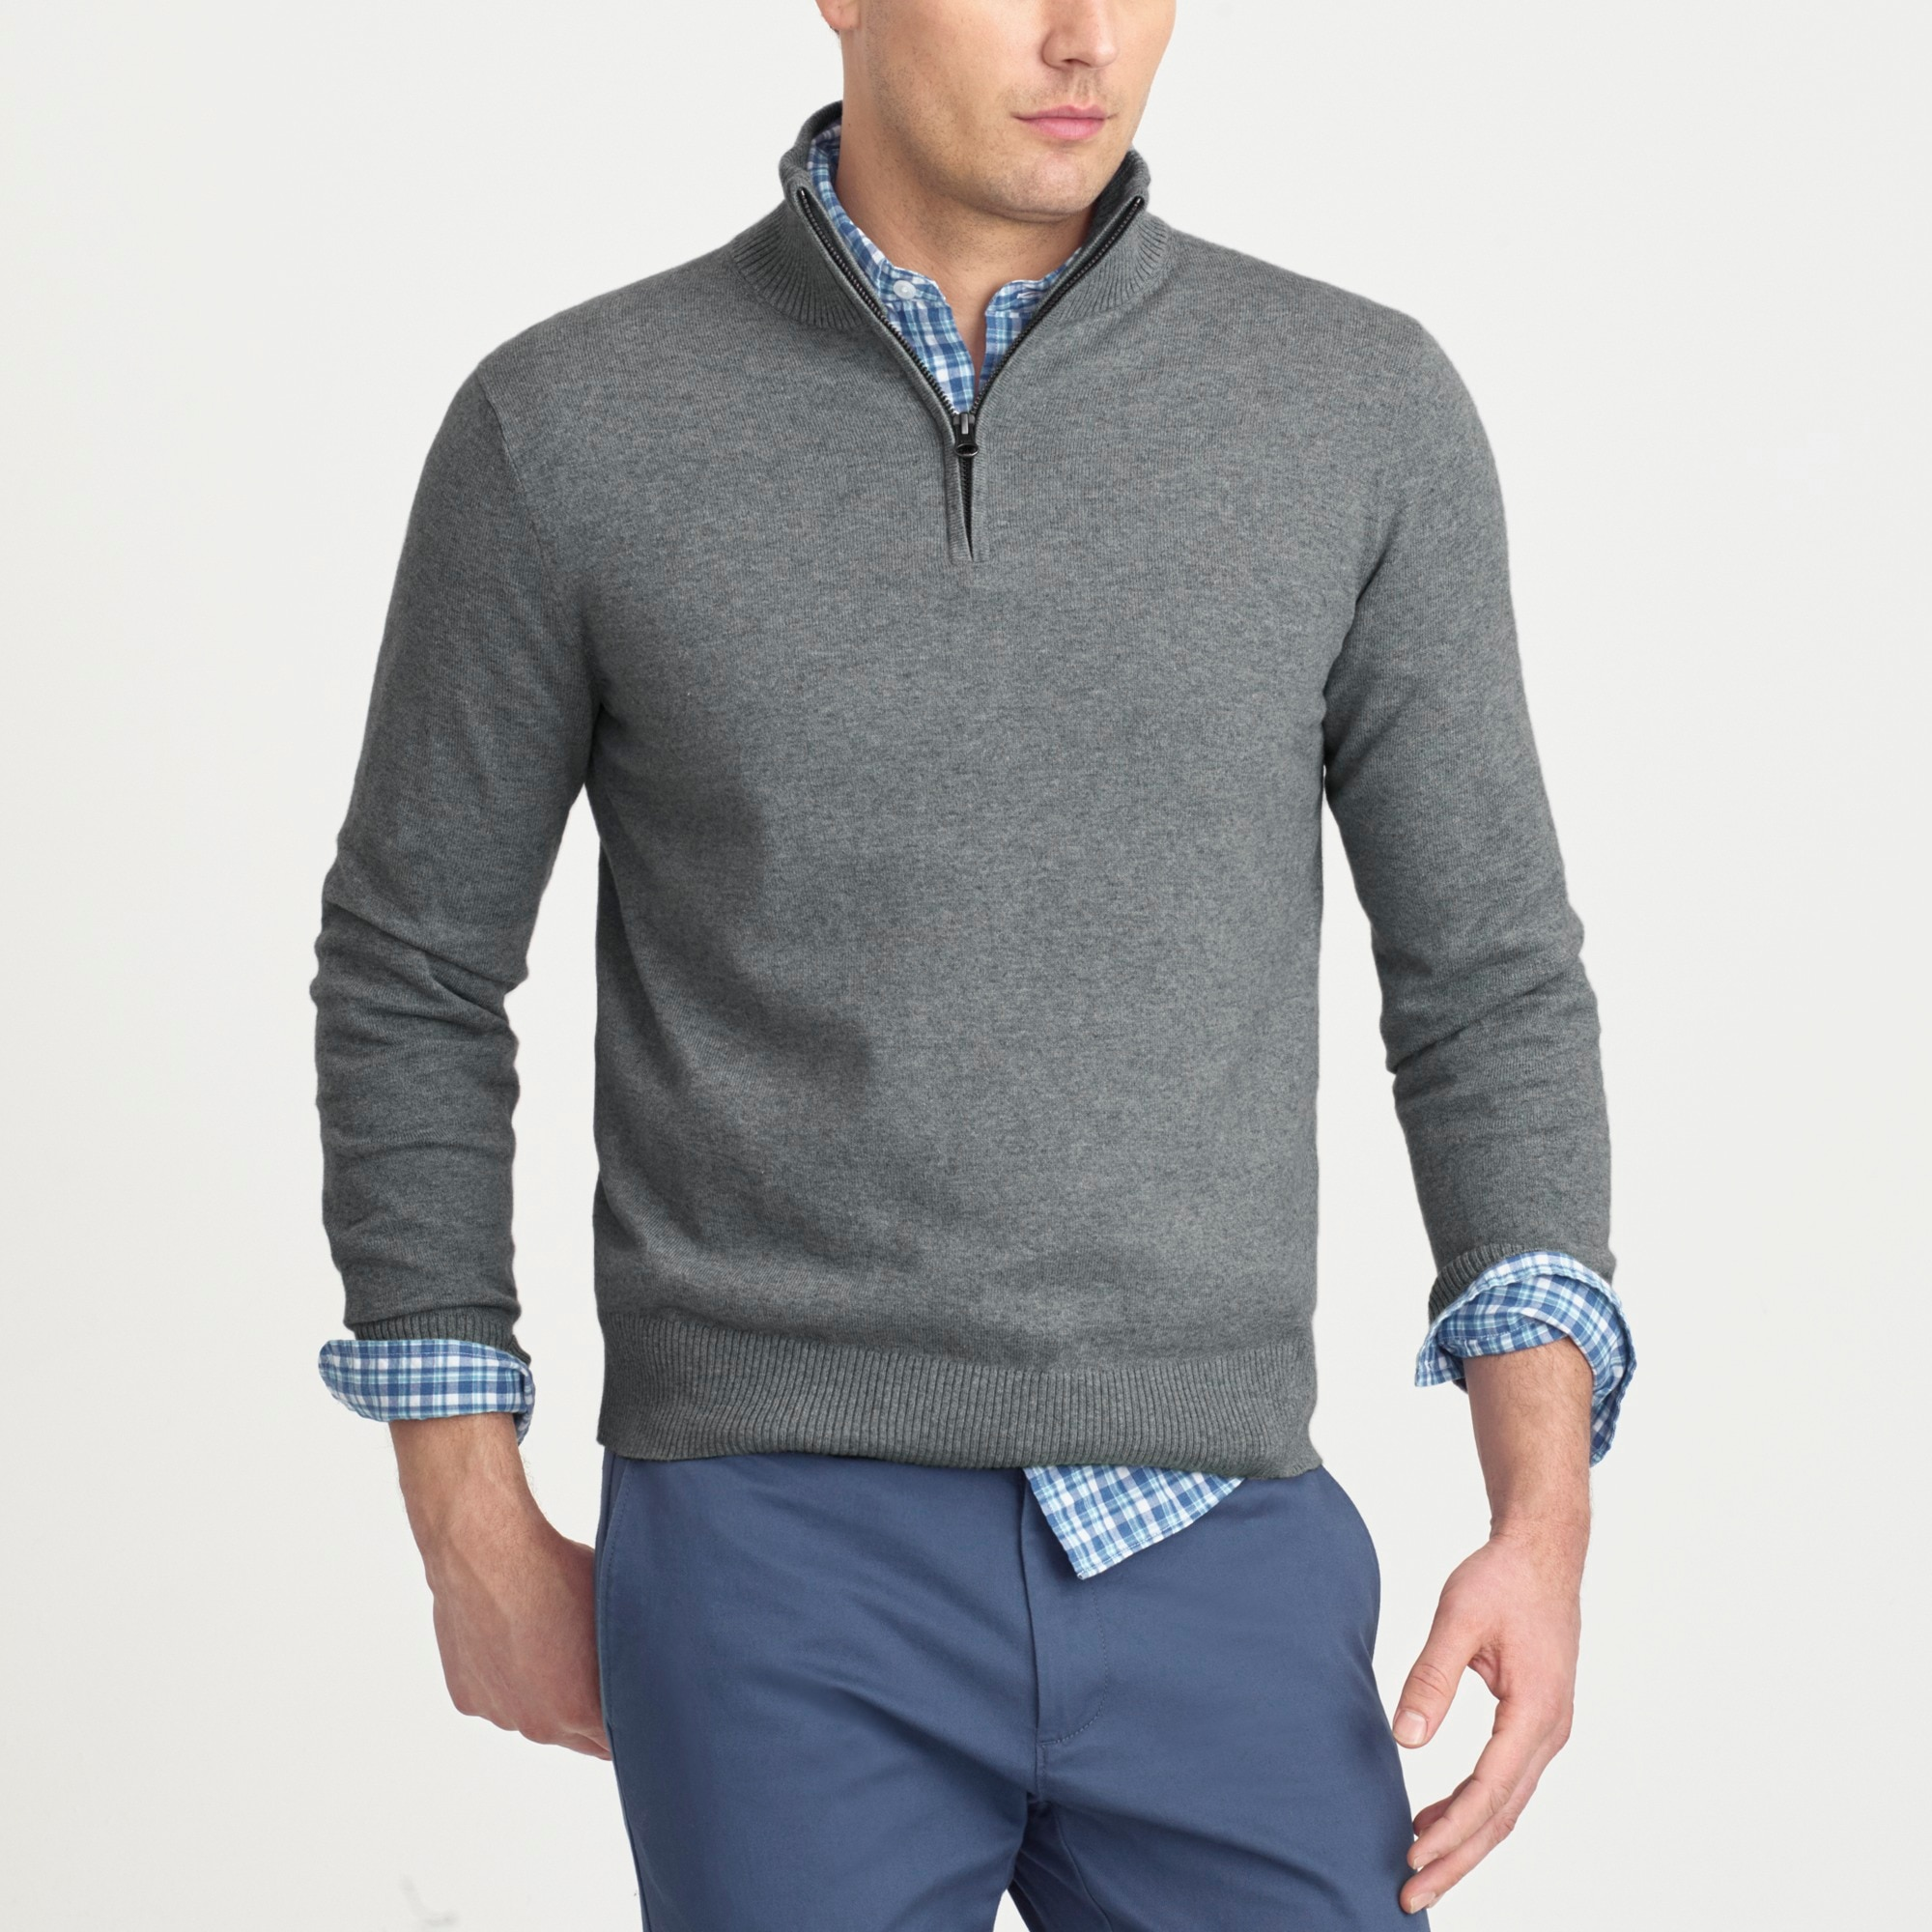 tall harbor cotton half-zip sweater : factorymen sweaters